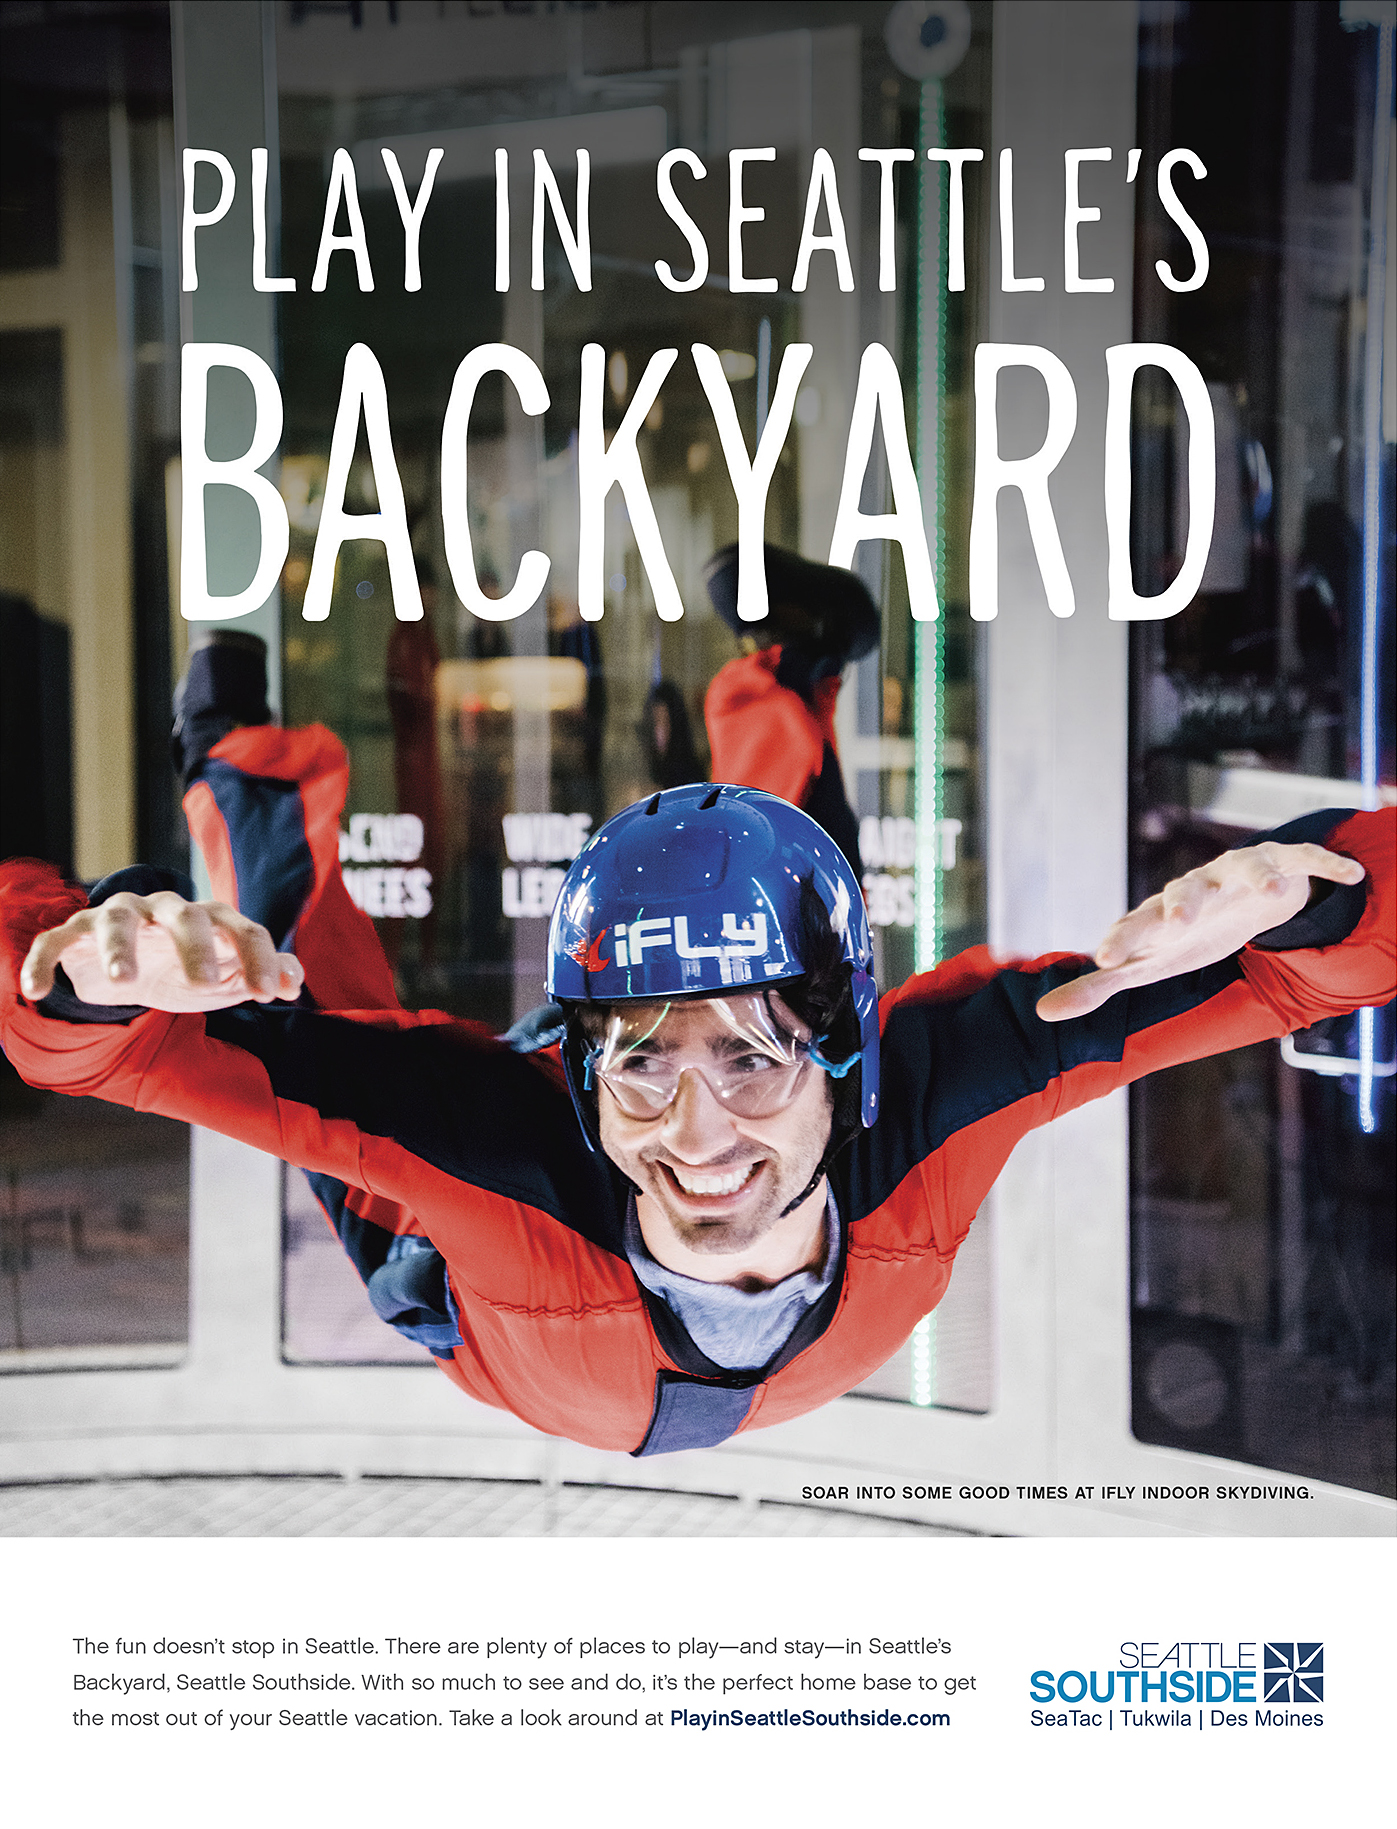 "There's plenty to see and do just beyond the Seattle city line. We created a multi-media campaign inviting folks to enjoy Seattle's Backyard — reframing the oft-misunderstood Seattle Southside. Each ad built on the ""Seattle's Backyard"" mantra, inviting tourists to play, stay, eat or meet in Seattle's Backyard."